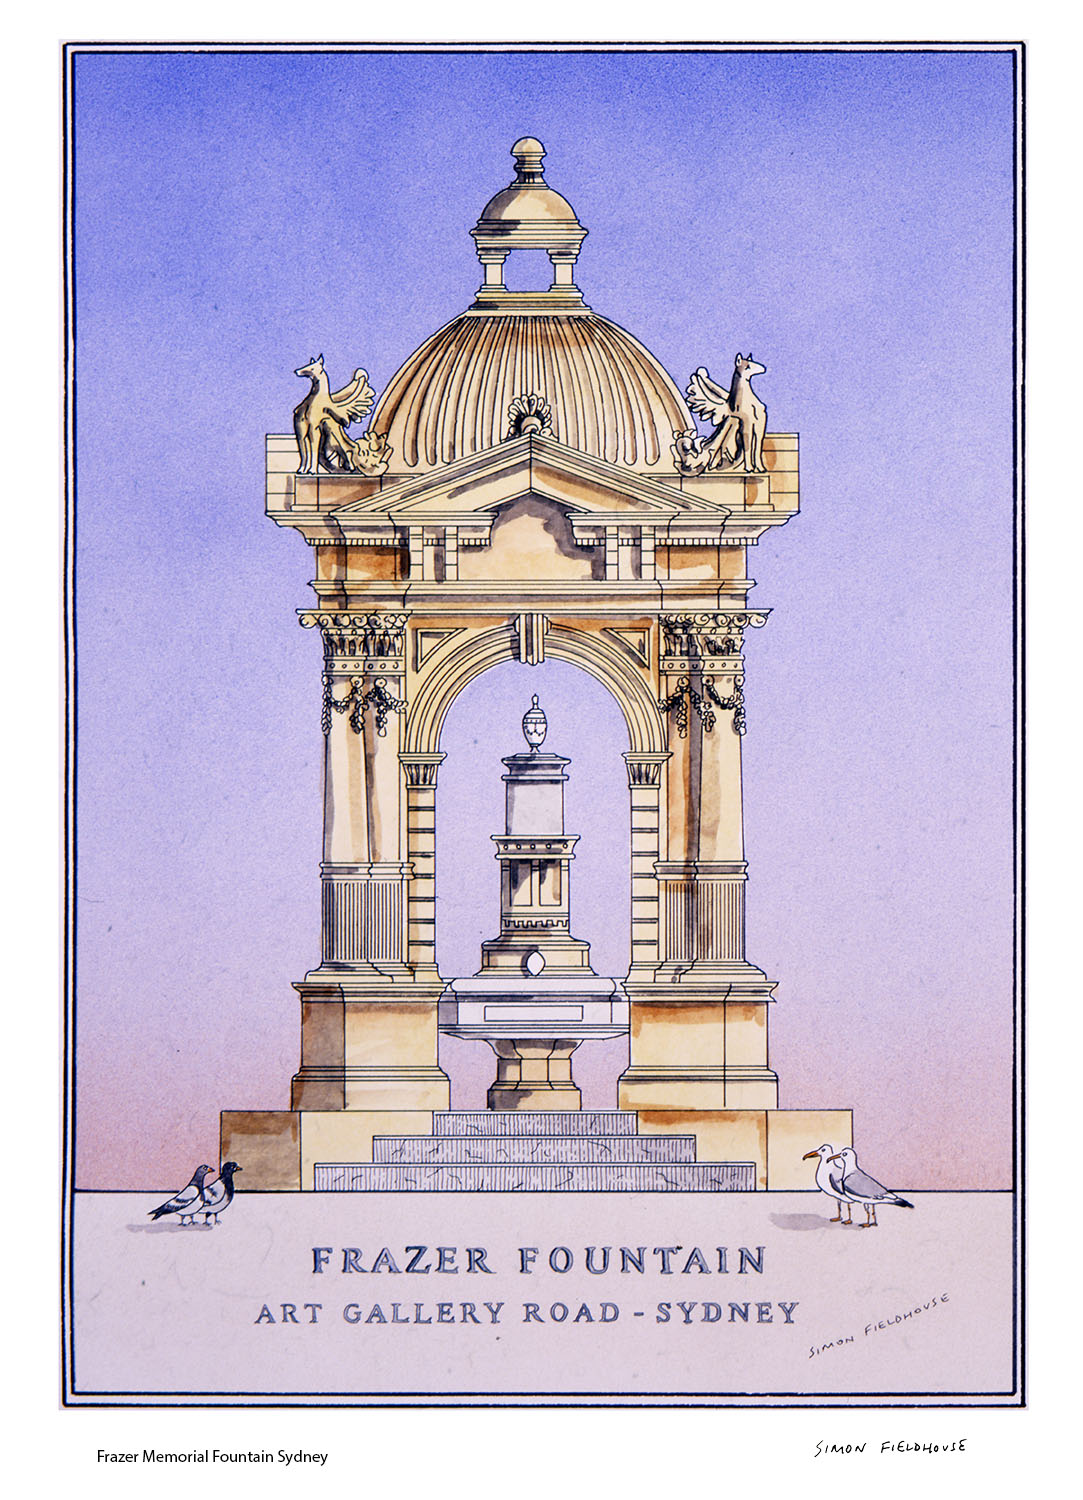 Frazer Fountain Sydney